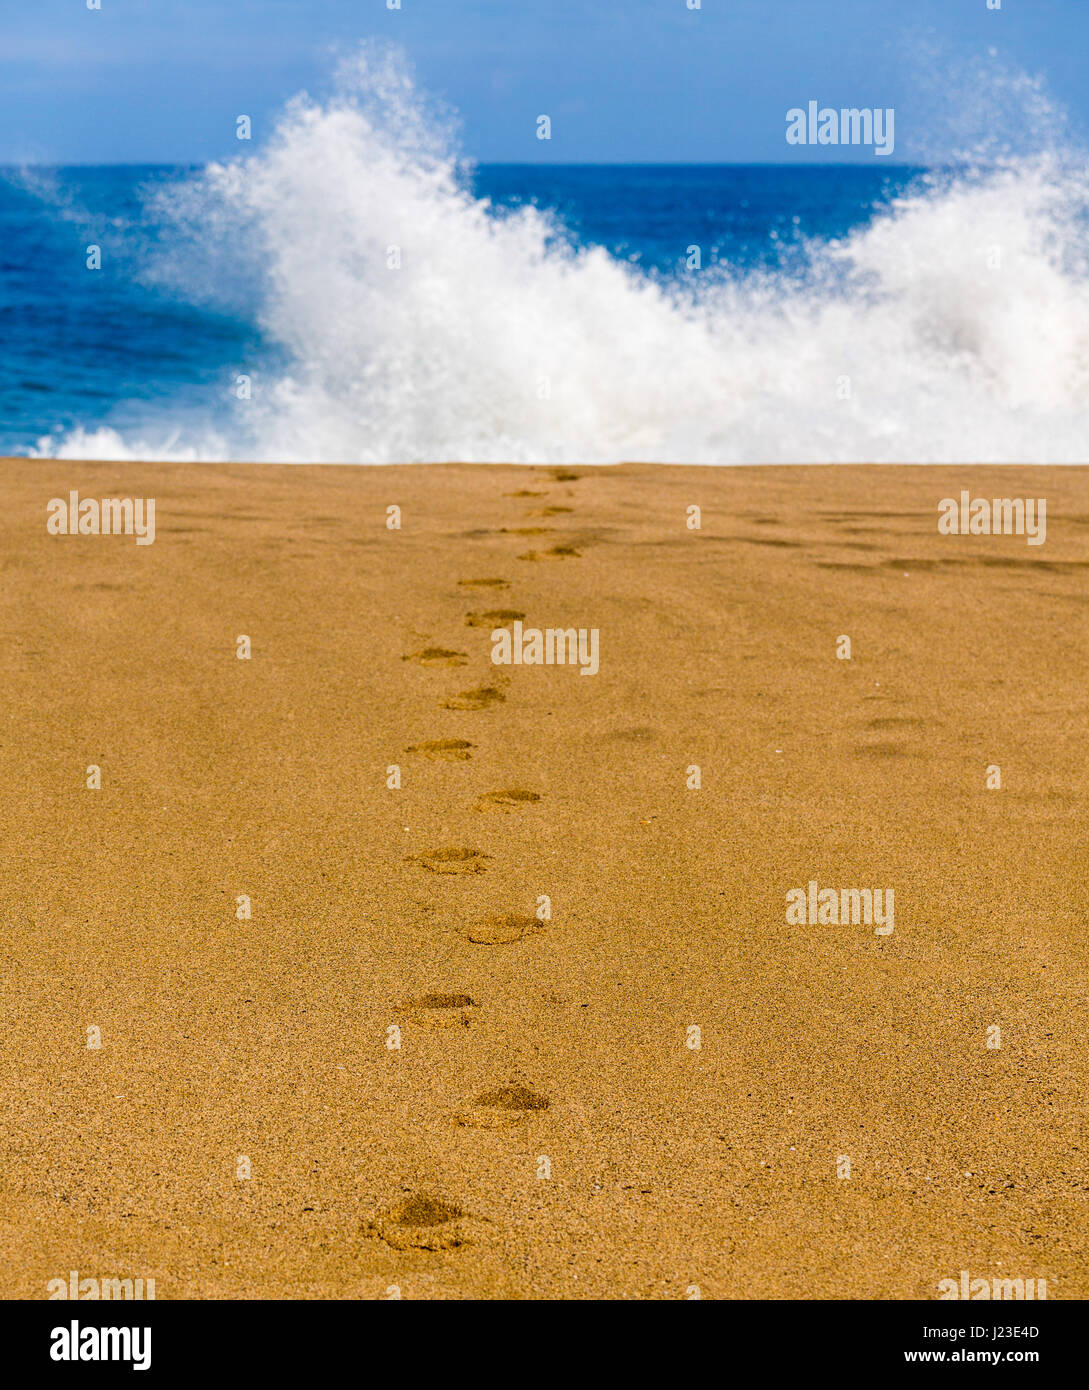 Footprints in the sand on a beach leading towards the sea with waves - Stock Image